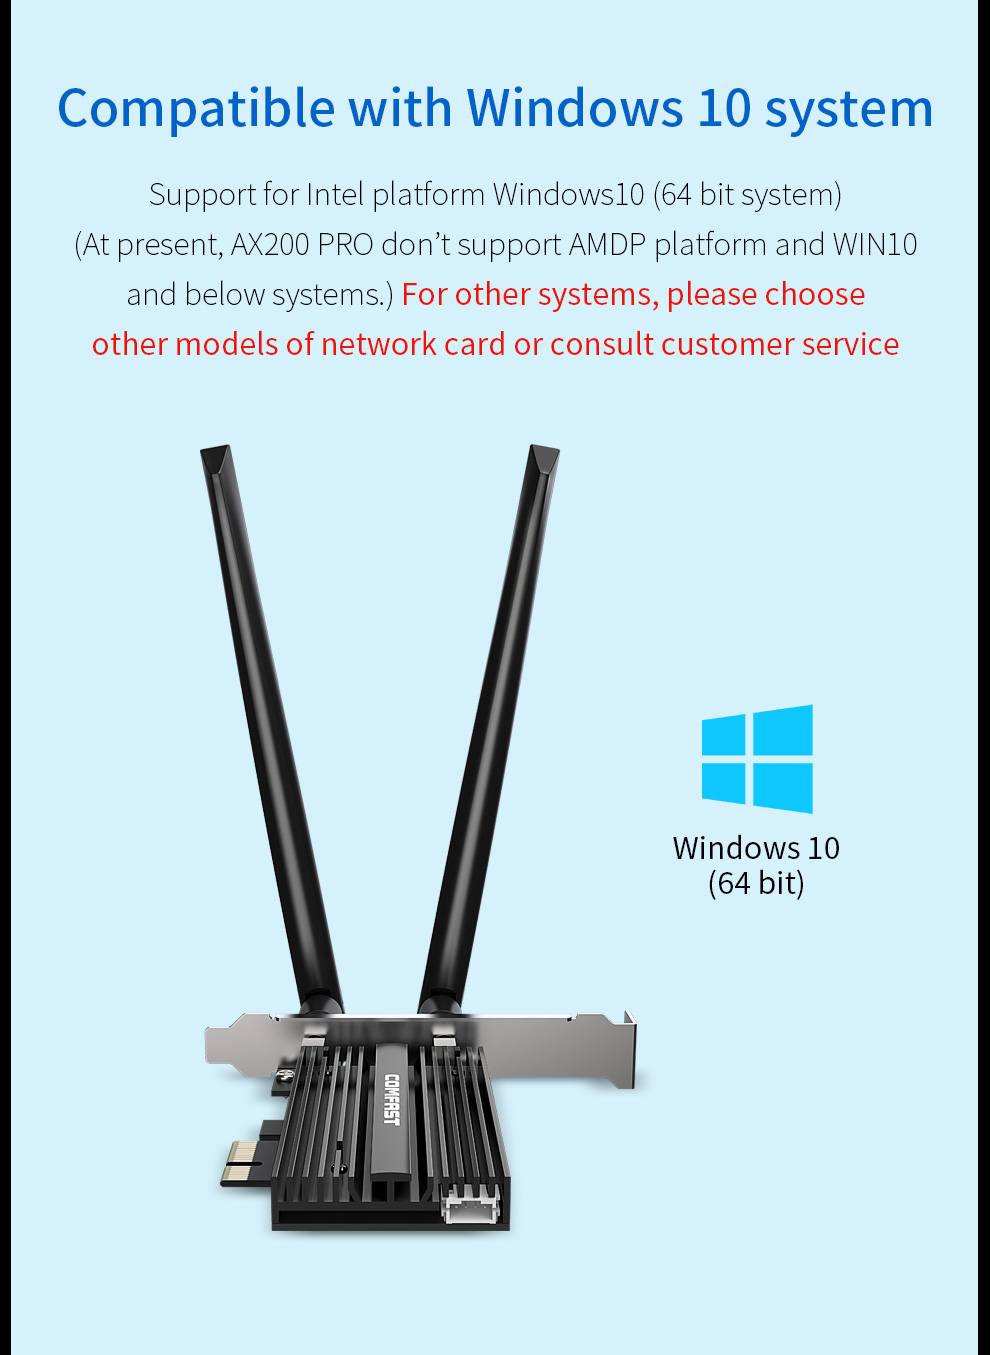 Dual band 3000Mbps Wifi 6 AX200 PRO PCI-E 1X Wireless Adapter 2.4/5Ghz 802.11AC/AX Bluetooth 5.0 Intel AX200NGW Network Card